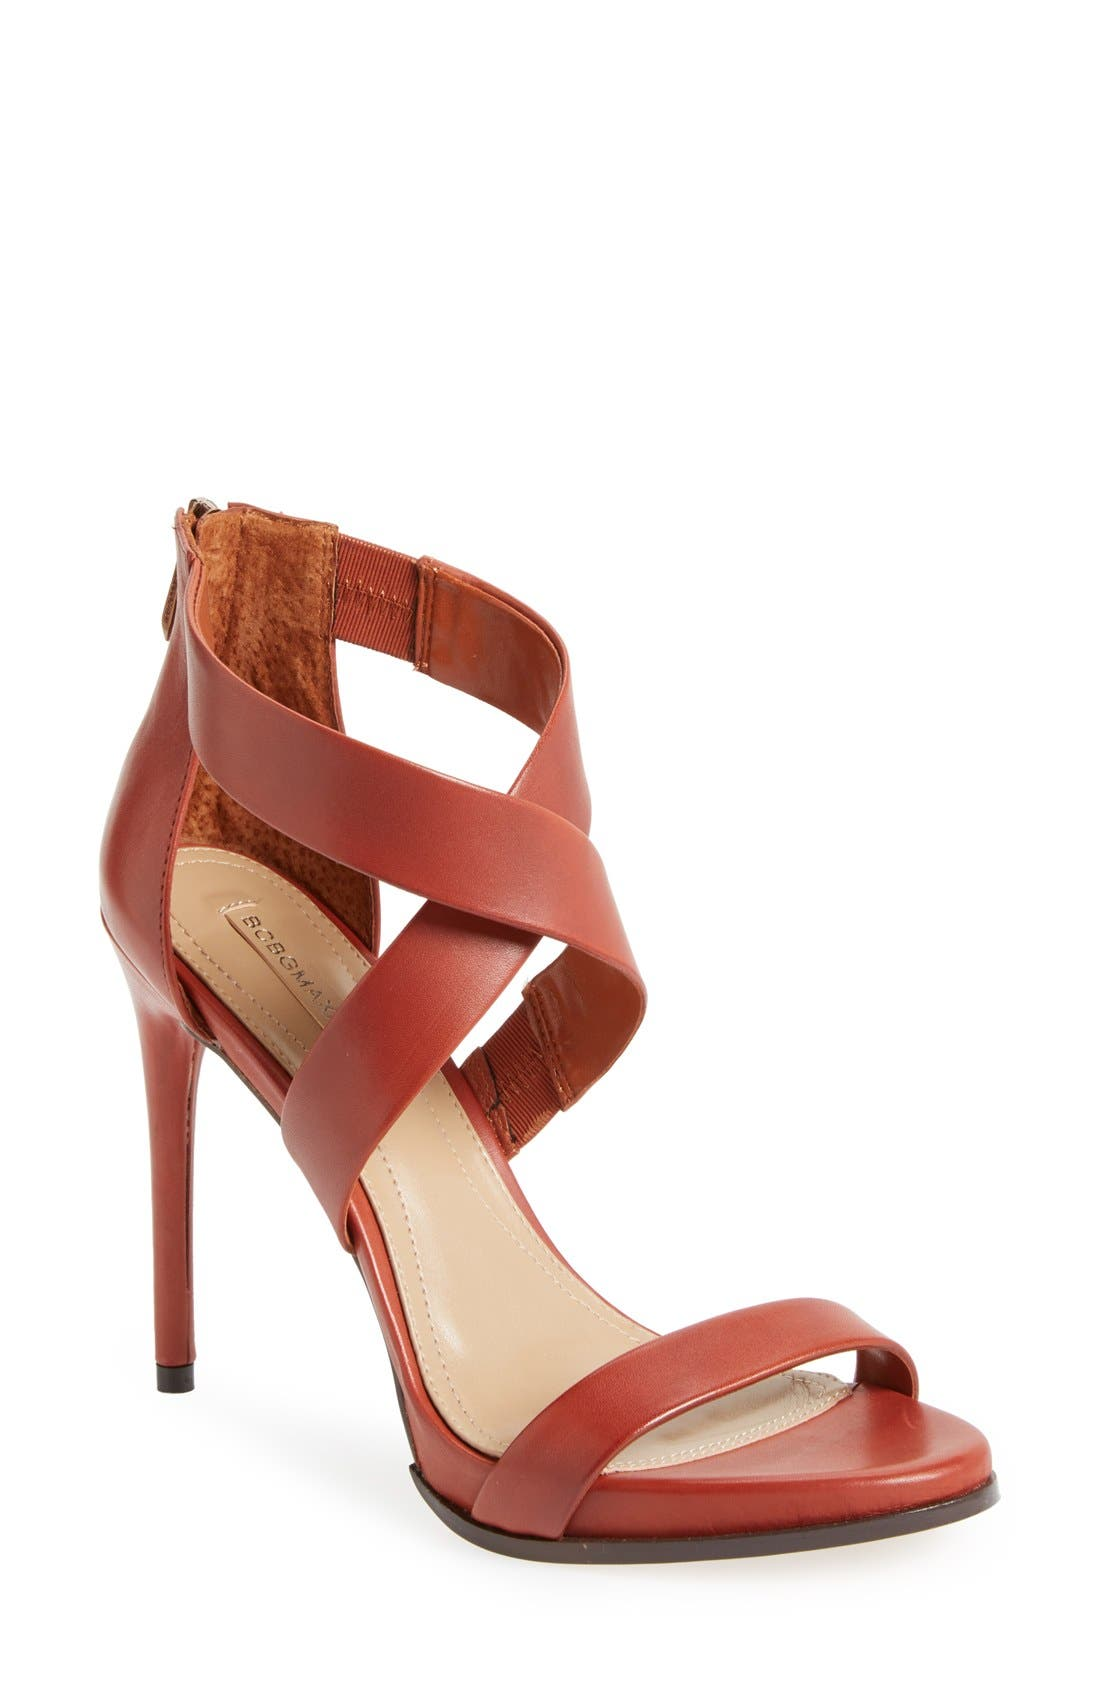 Alternate Image 1 Selected - BCBGMAXAZRIA 'Elyse' Sandal (Women)